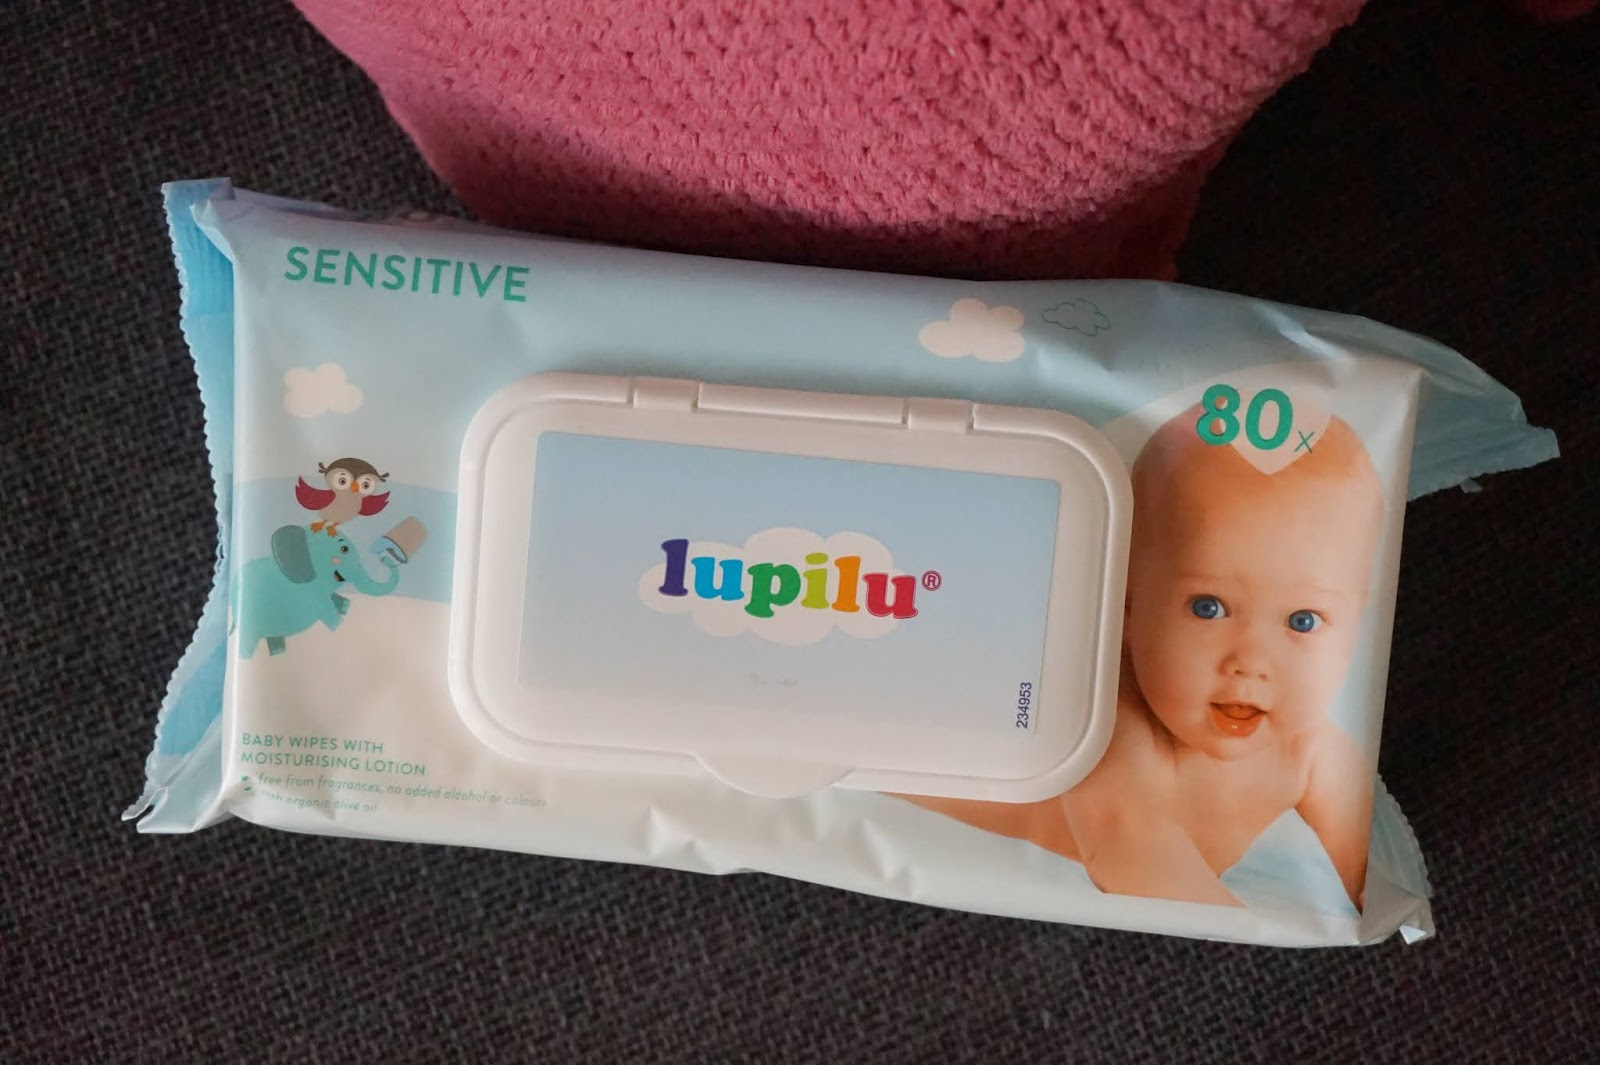 lidl lupilu sensitive baby wipes